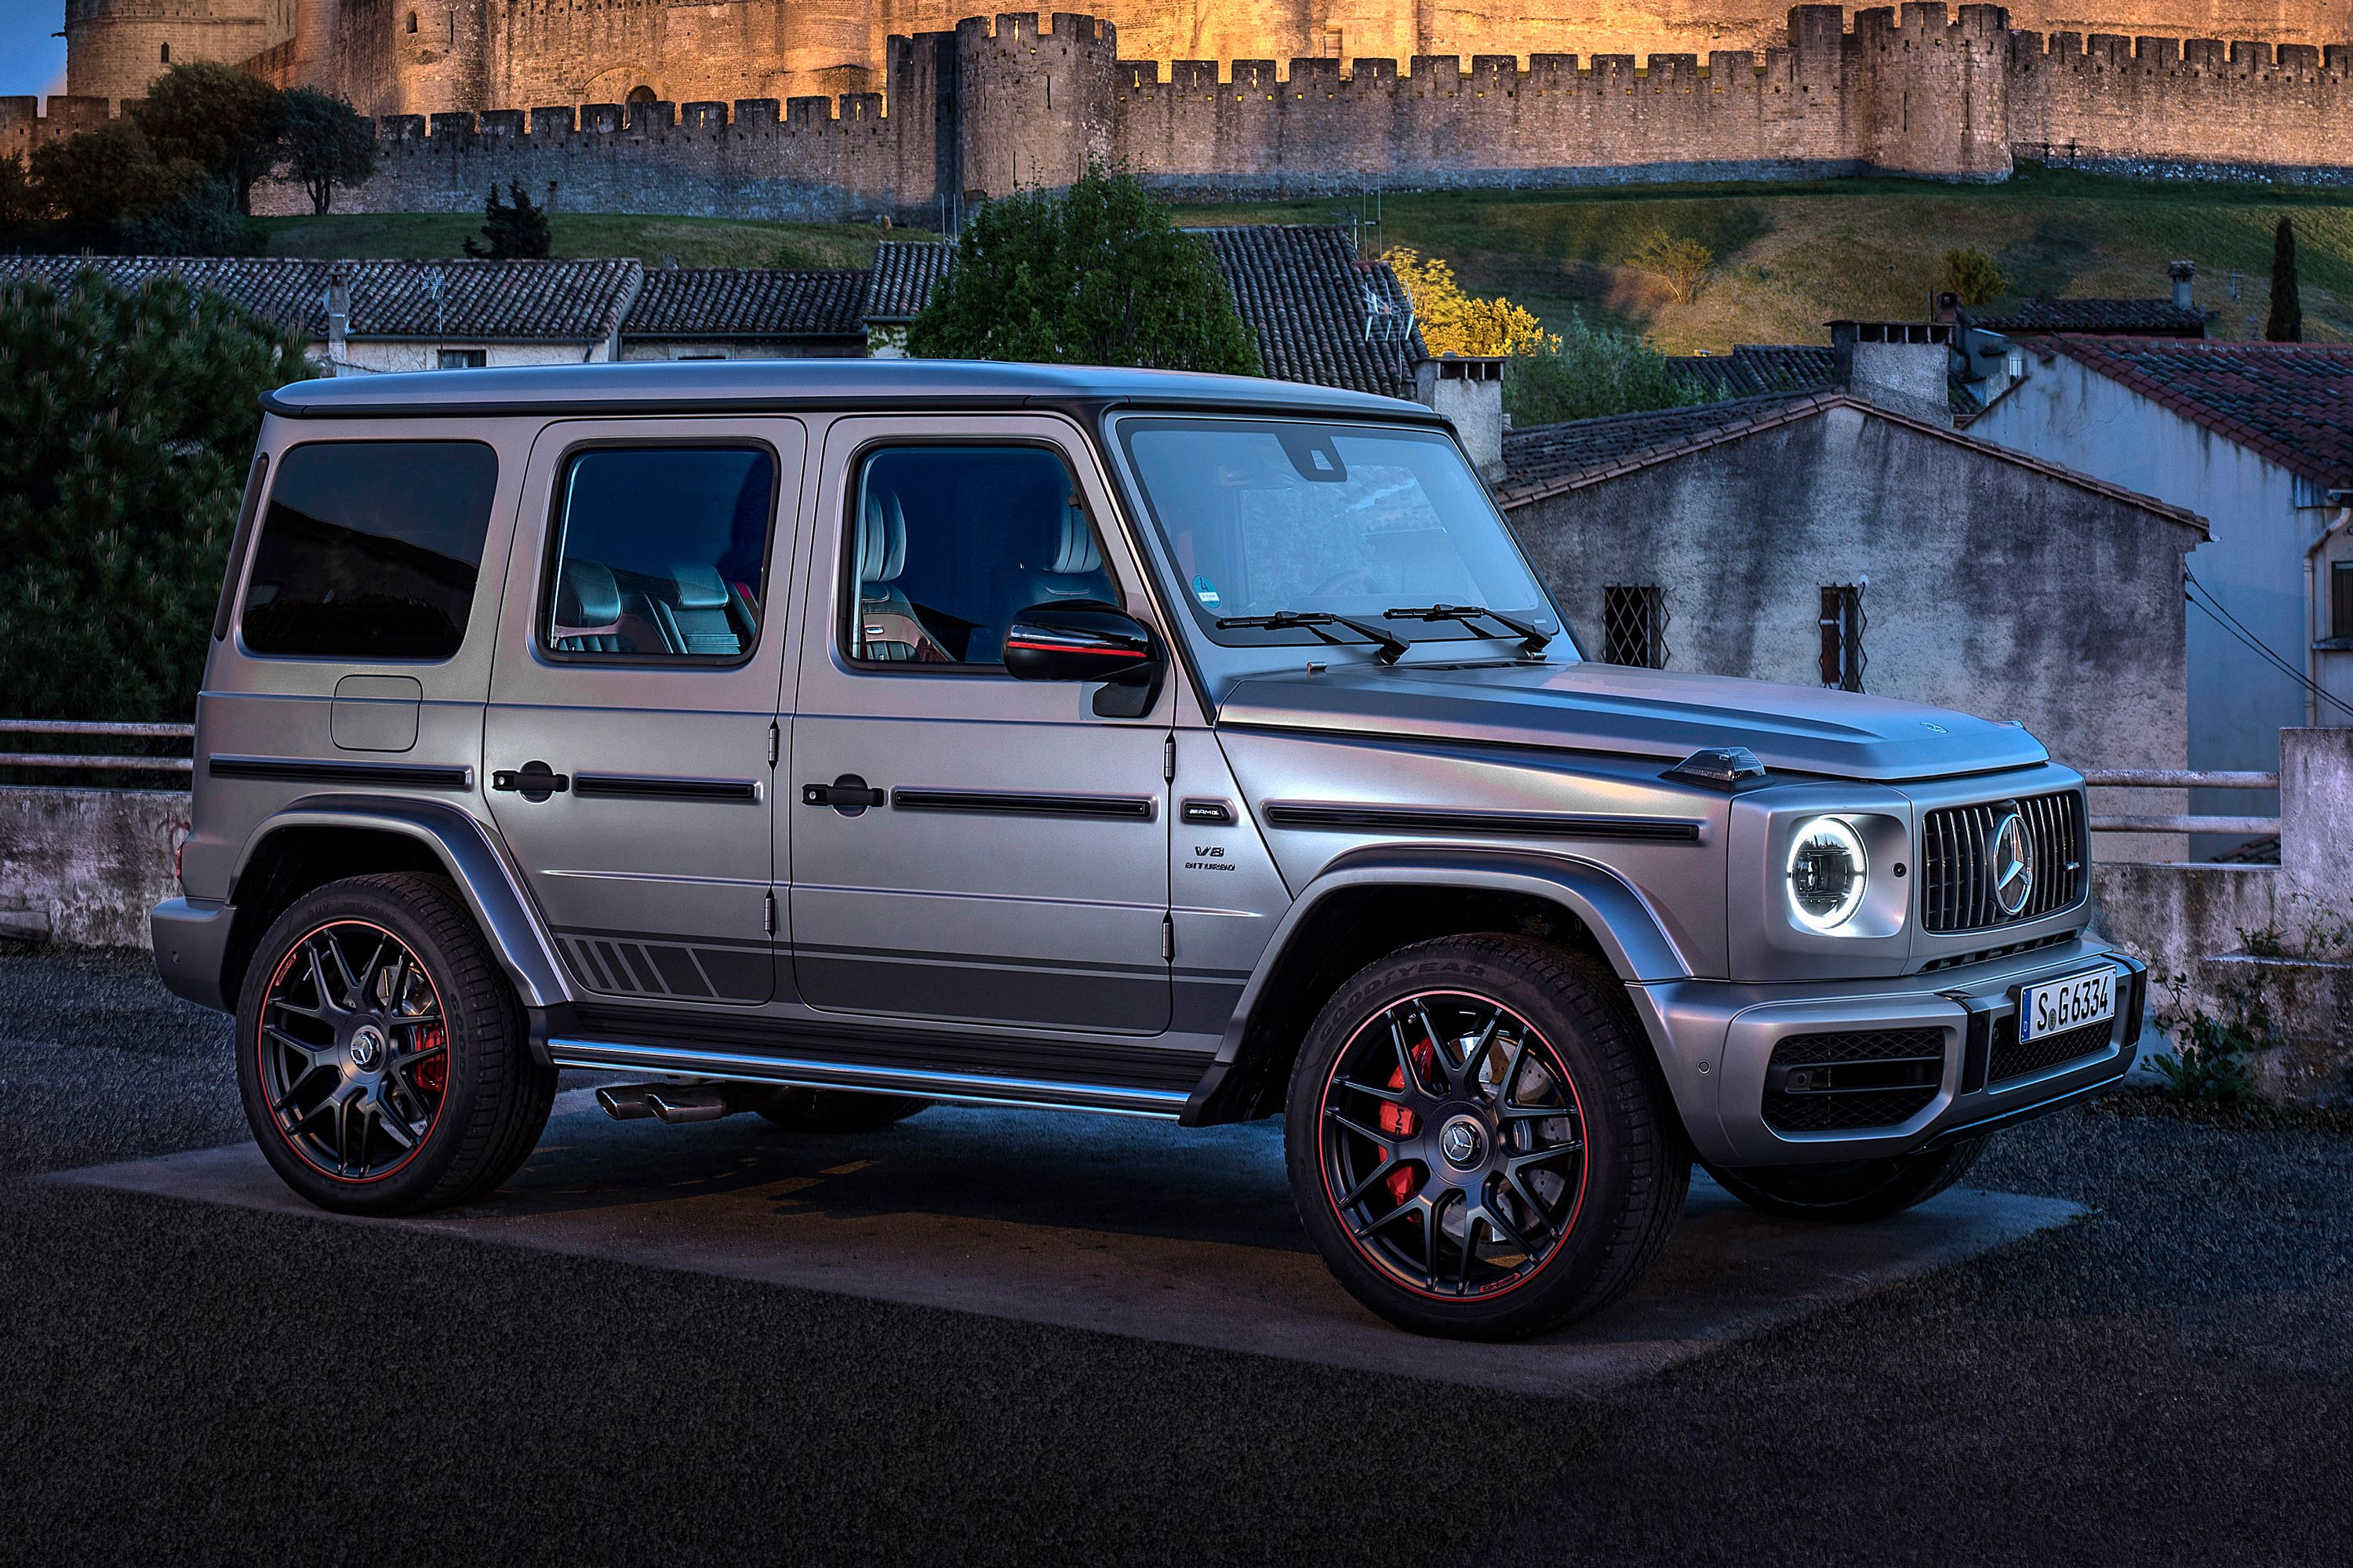 2021 Mercedes-AMG G63 Review, Pricing, and Specs